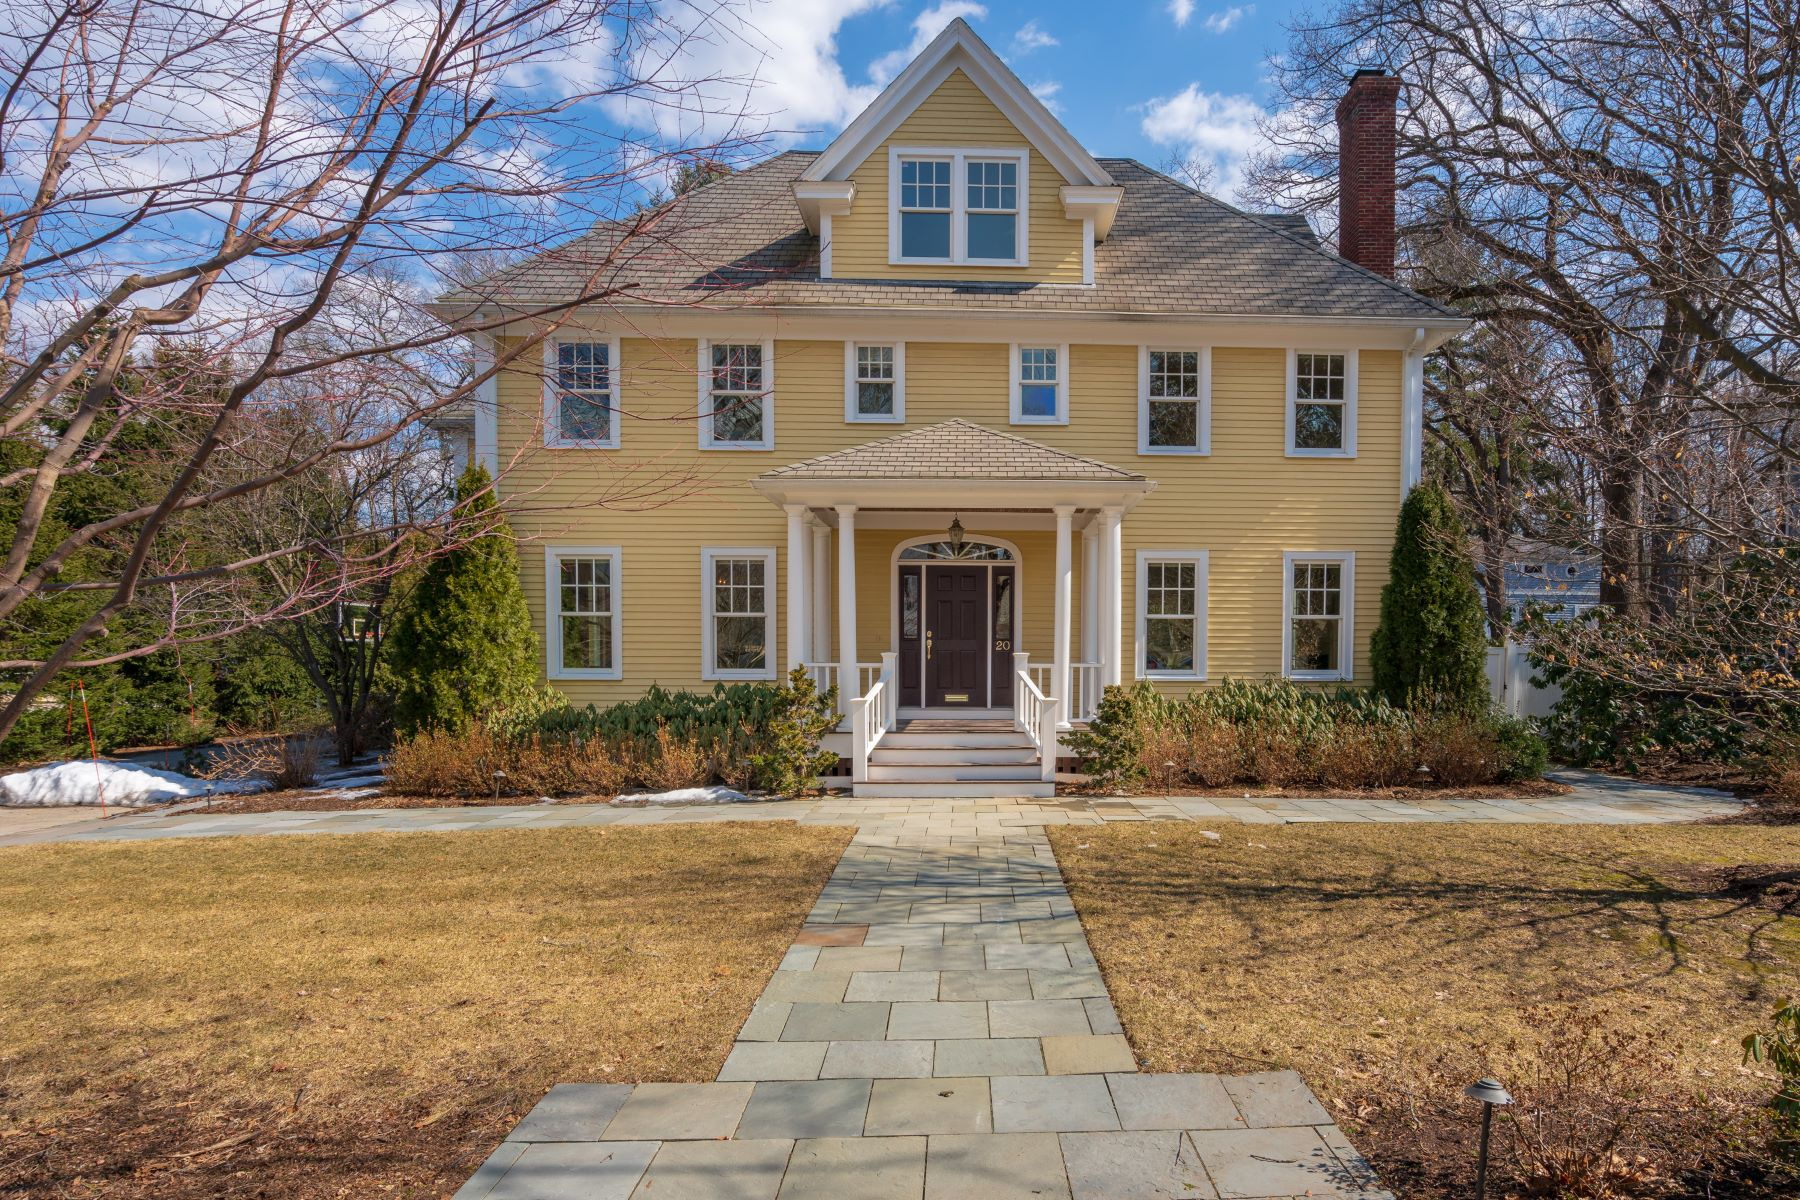 Single Family Home for Active at 20 Vista Ave Newton, Massachusetts 02466 United States